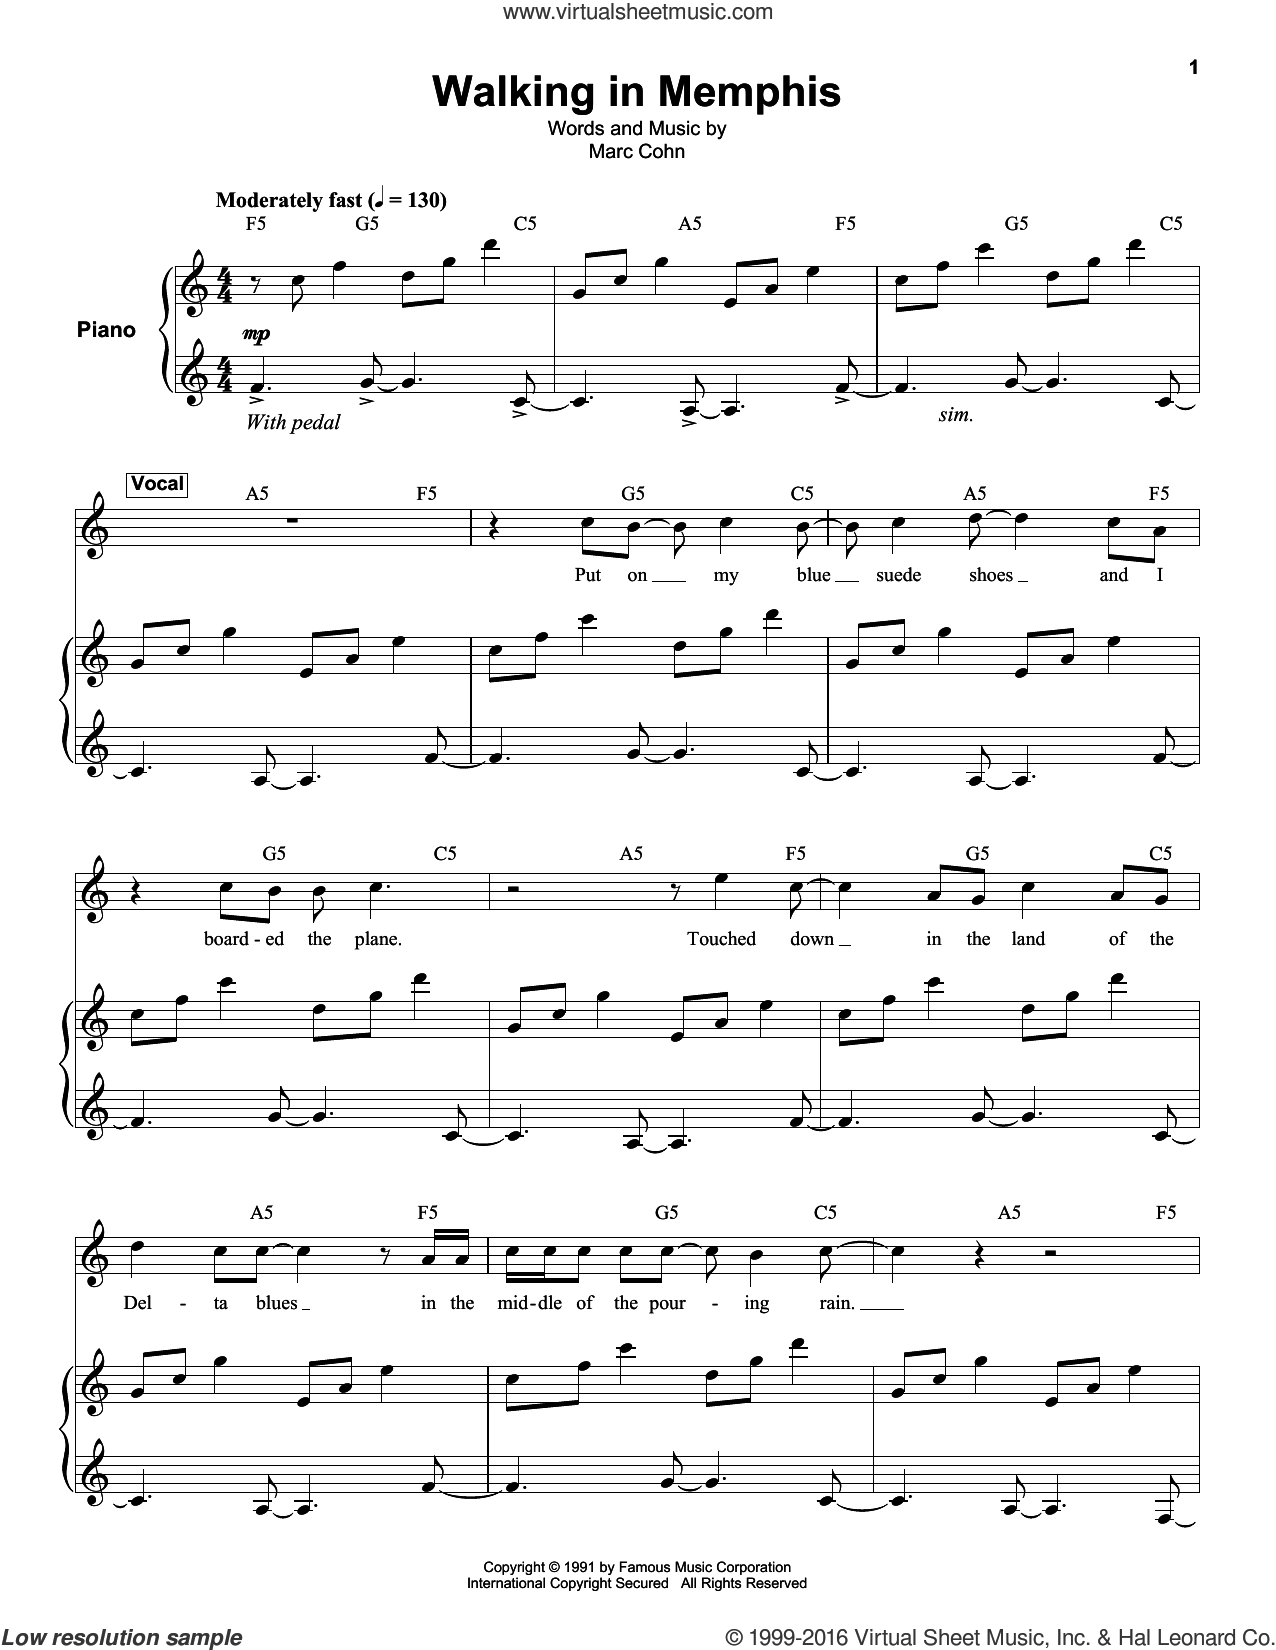 Walking In Memphis sheet music for keyboard or piano by Marc Cohn and Lonestar. Score Image Preview.